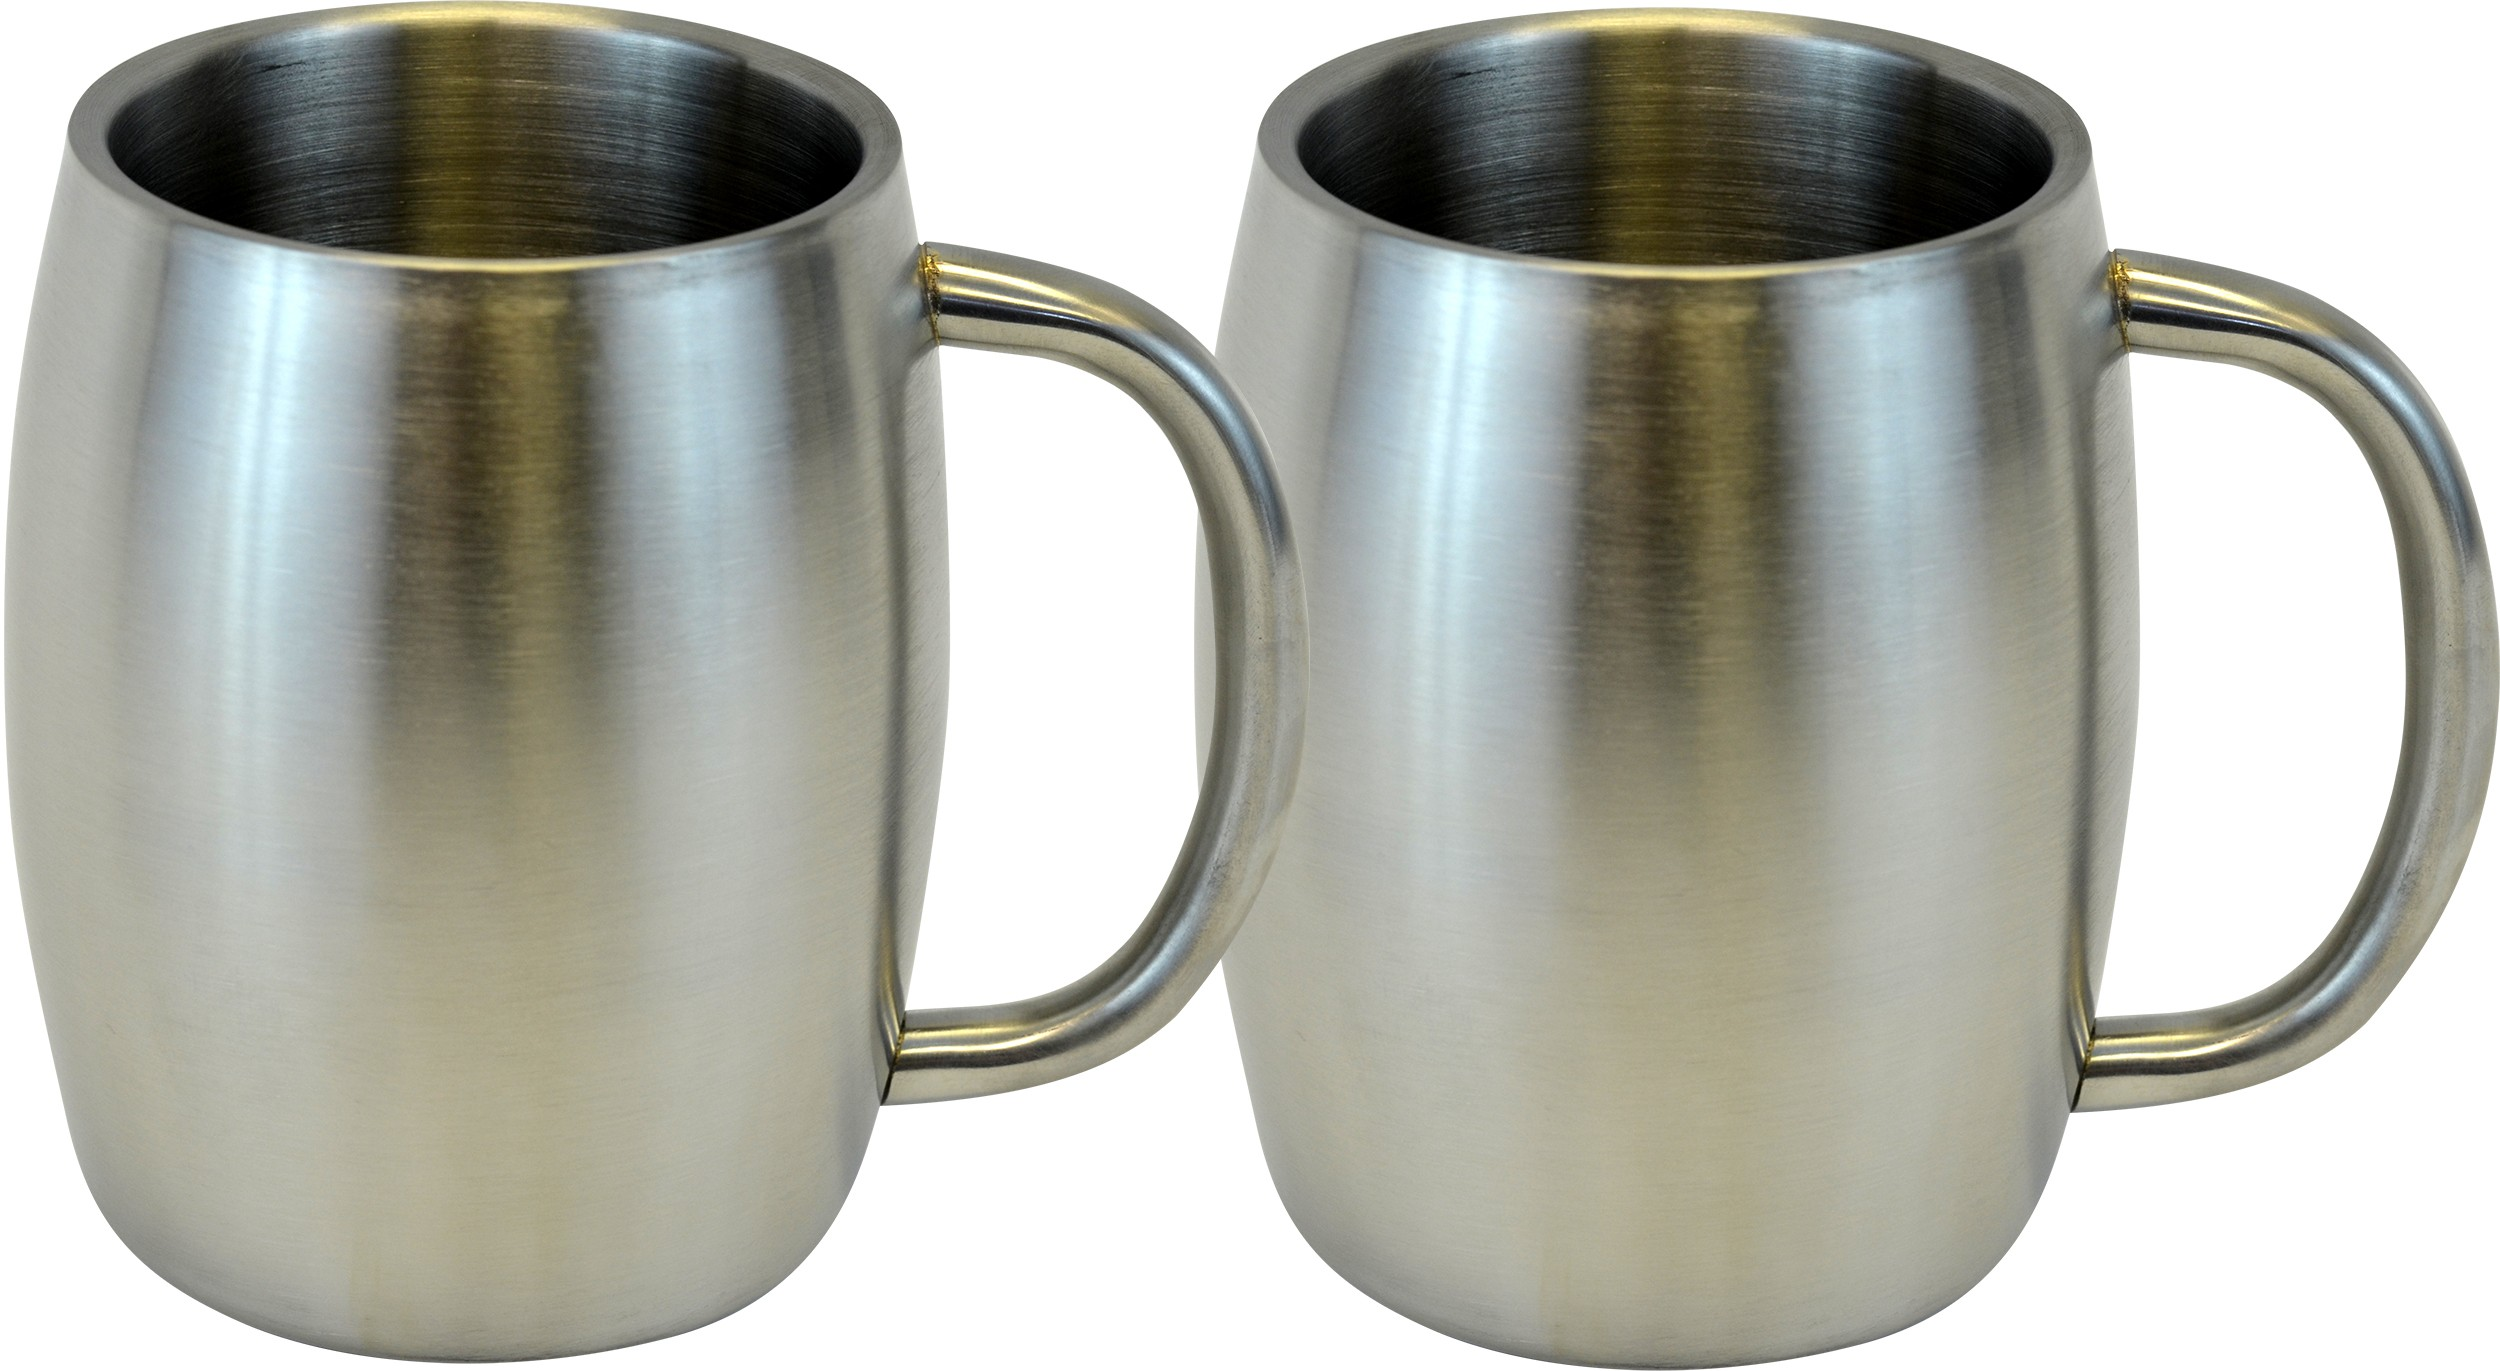 Stainless Double Wall Steel Beer / Coffee / Desk Mug, Smooth 14-Ounce, Set of 2